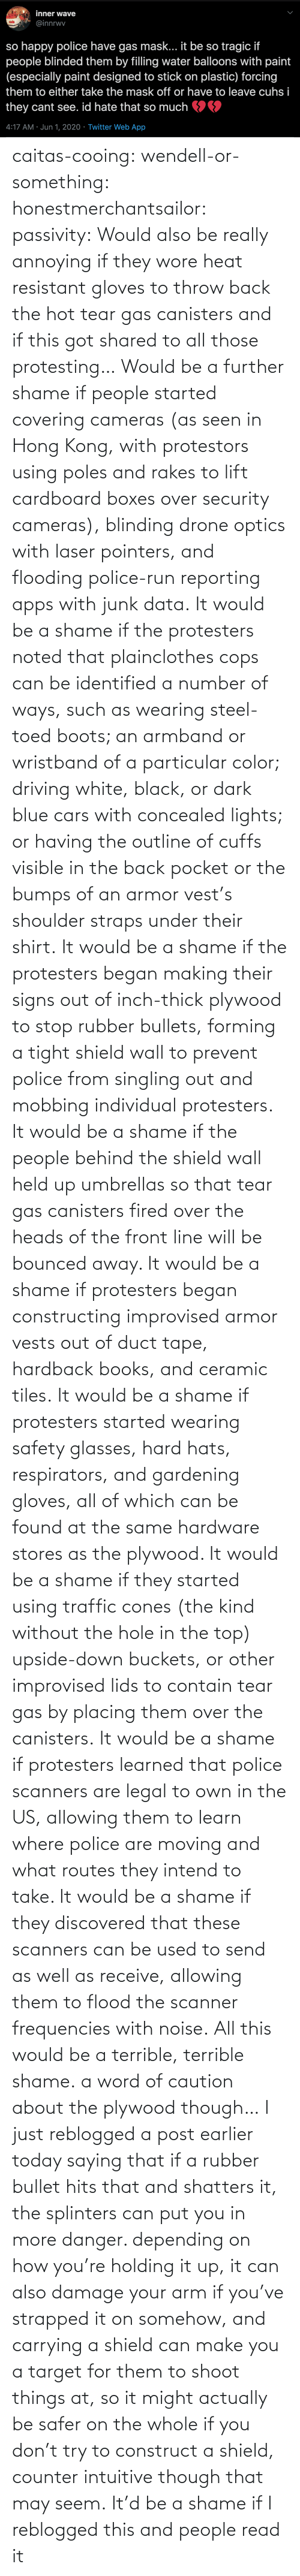 Out Of: caitas-cooing:  wendell-or-something: honestmerchantsailor:  passivity: Would also be really annoying if they wore heat resistant gloves to throw back the hot tear gas canisters and if this got shared to all those protesting… Would be a further shame if people started covering cameras (as seen in Hong Kong, with protestors using poles and rakes to lift cardboard boxes over security cameras), blinding drone optics with laser pointers, and flooding police-run reporting apps with junk data. It would be a shame if the protesters noted that plainclothes cops can be identified a number of ways, such as wearing steel-toed boots; an armband or wristband of a particular color; driving white, black, or dark blue cars with concealed lights; or having the outline of cuffs visible in the back pocket or the bumps of an armor vest's shoulder straps under their shirt. It would be a shame if the protesters began making their signs out of inch-thick plywood to stop rubber bullets, forming a tight shield wall to prevent police from singling out and mobbing individual protesters. It would be a shame if the people behind the shield wall held up umbrellas so that tear gas canisters fired over the heads of the front line will be bounced away. It would be a shame if protesters began constructing improvised armor vests out of duct tape, hardback books, and ceramic tiles. It would be a shame if protesters started wearing safety glasses, hard hats, respirators, and gardening gloves, all of which can be found at the same hardware stores as the plywood. It would be a shame if they started using traffic cones (the kind without the hole in the top) upside-down buckets, or other improvised lids to contain tear gas by placing them over the canisters. It would be a shame if protesters learned that police scanners are legal to own in the US, allowing them to learn where police are moving and what routes they intend to take. It would be a shame if they discovered that these scanners can be used to send as well as receive, allowing them to flood the scanner frequencies with noise. All this would be a terrible, terrible shame.    a word of caution about the plywood though… I just reblogged a post earlier today saying that if a rubber bullet hits that and shatters it, the splinters can put you in more danger. depending on how you're holding it up, it can also damage your arm if you've strapped it on somehow, and carrying a shield can make you a target for them to shoot things at, so it might actually be safer on the whole if you don't try to construct a shield, counter intuitive though that may seem.    It'd be a shame if I reblogged this and people read it